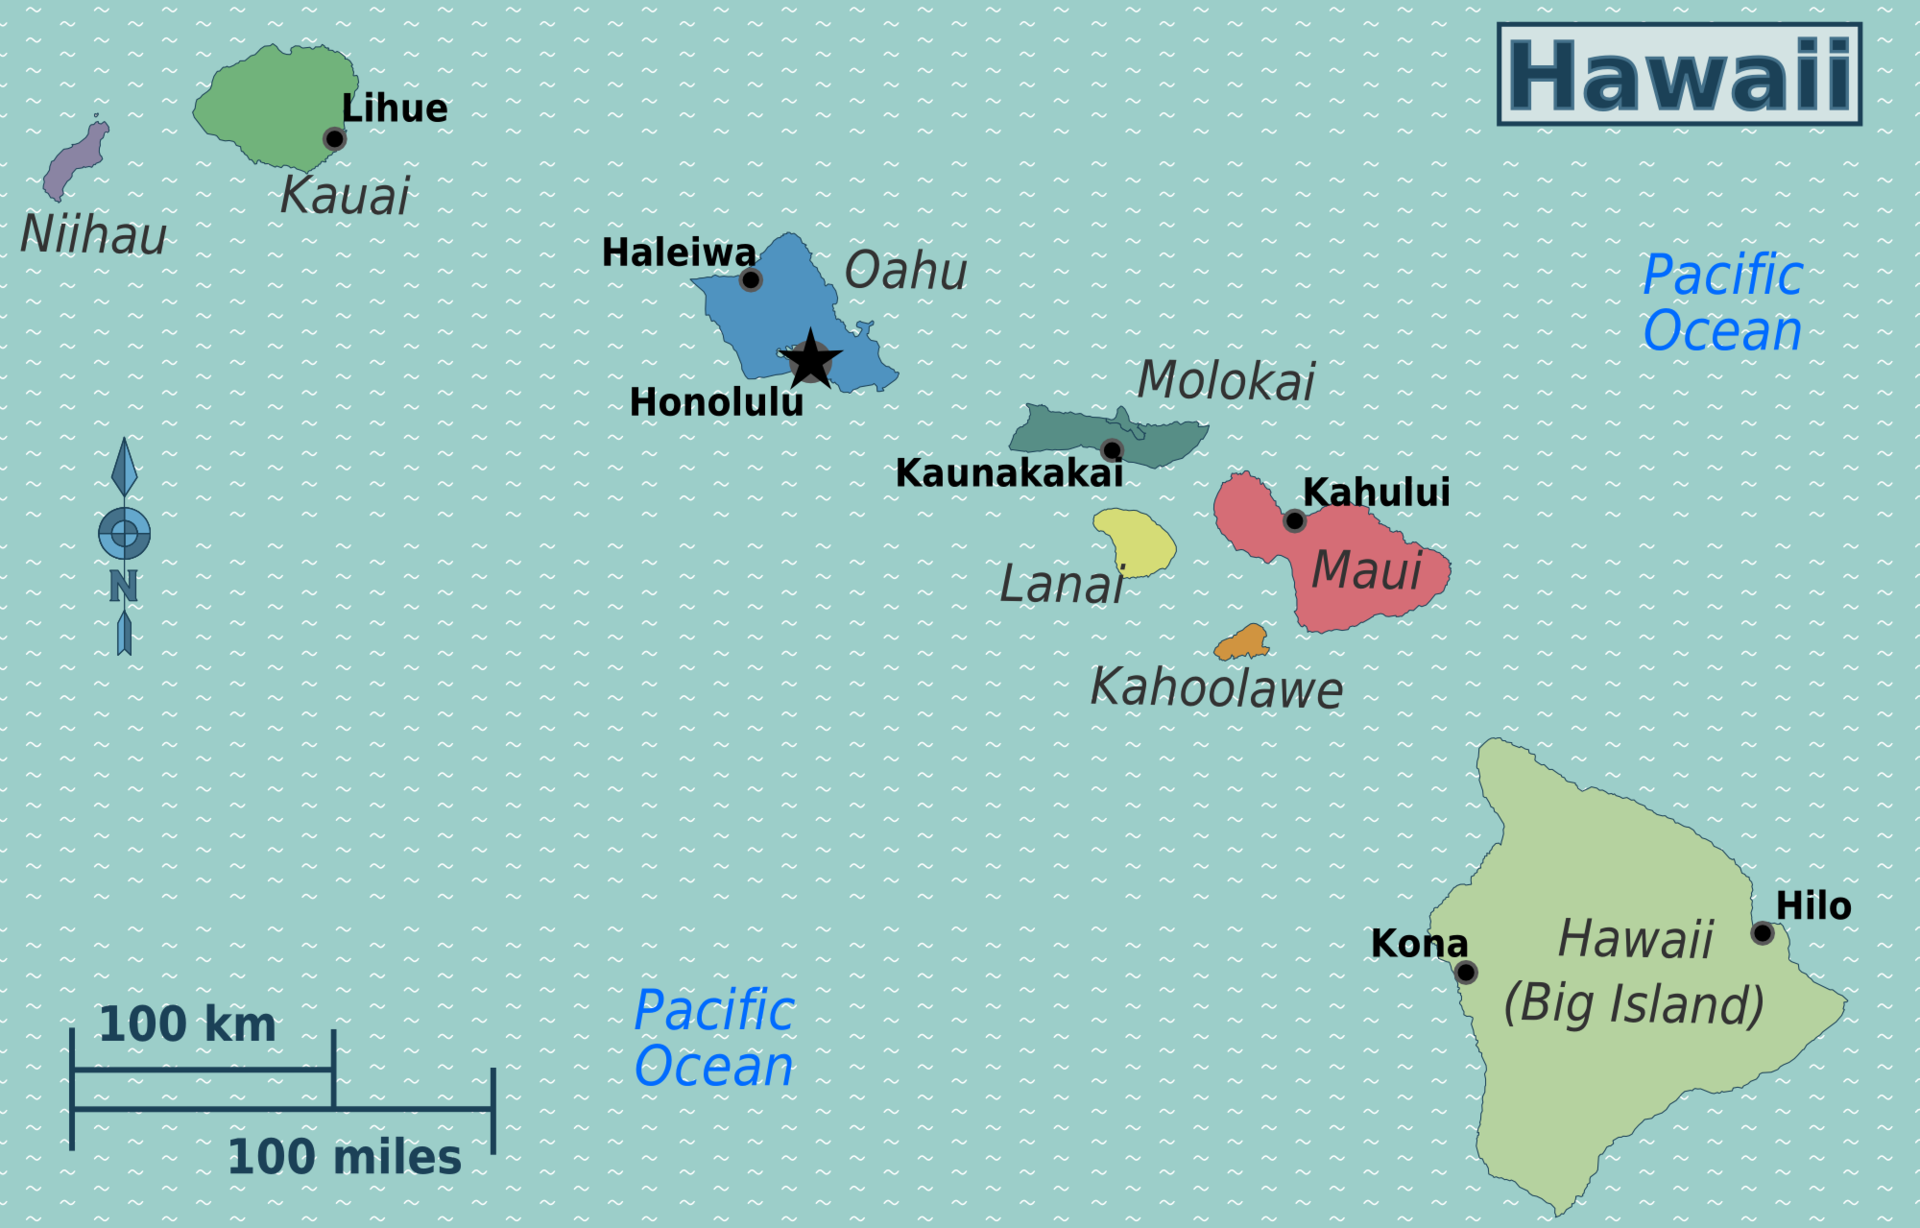 Hawaii – Travel guide at Wikivoyage